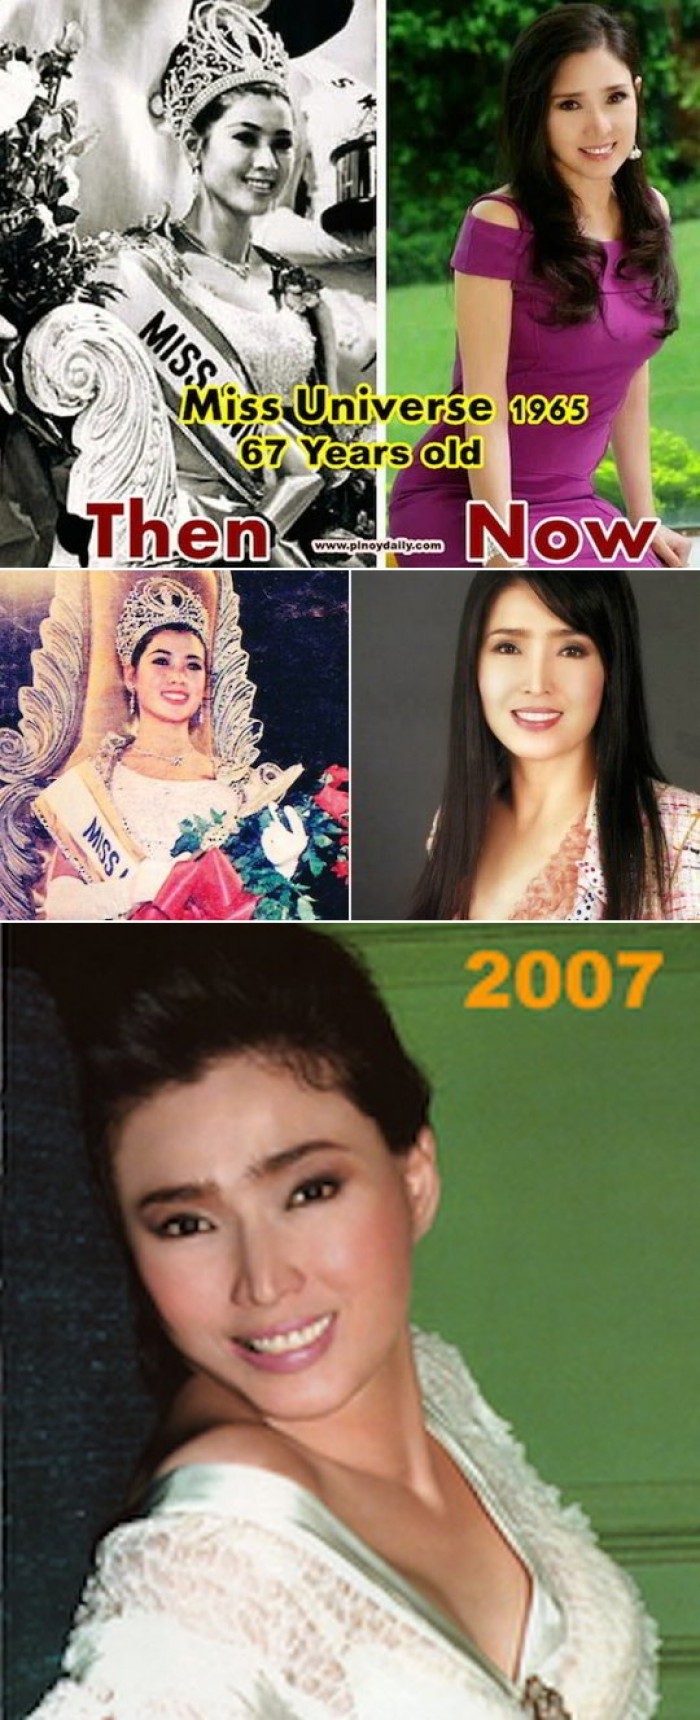 Miss Universe 1965 Hasn't Aged A Day Over The Last 50 Years